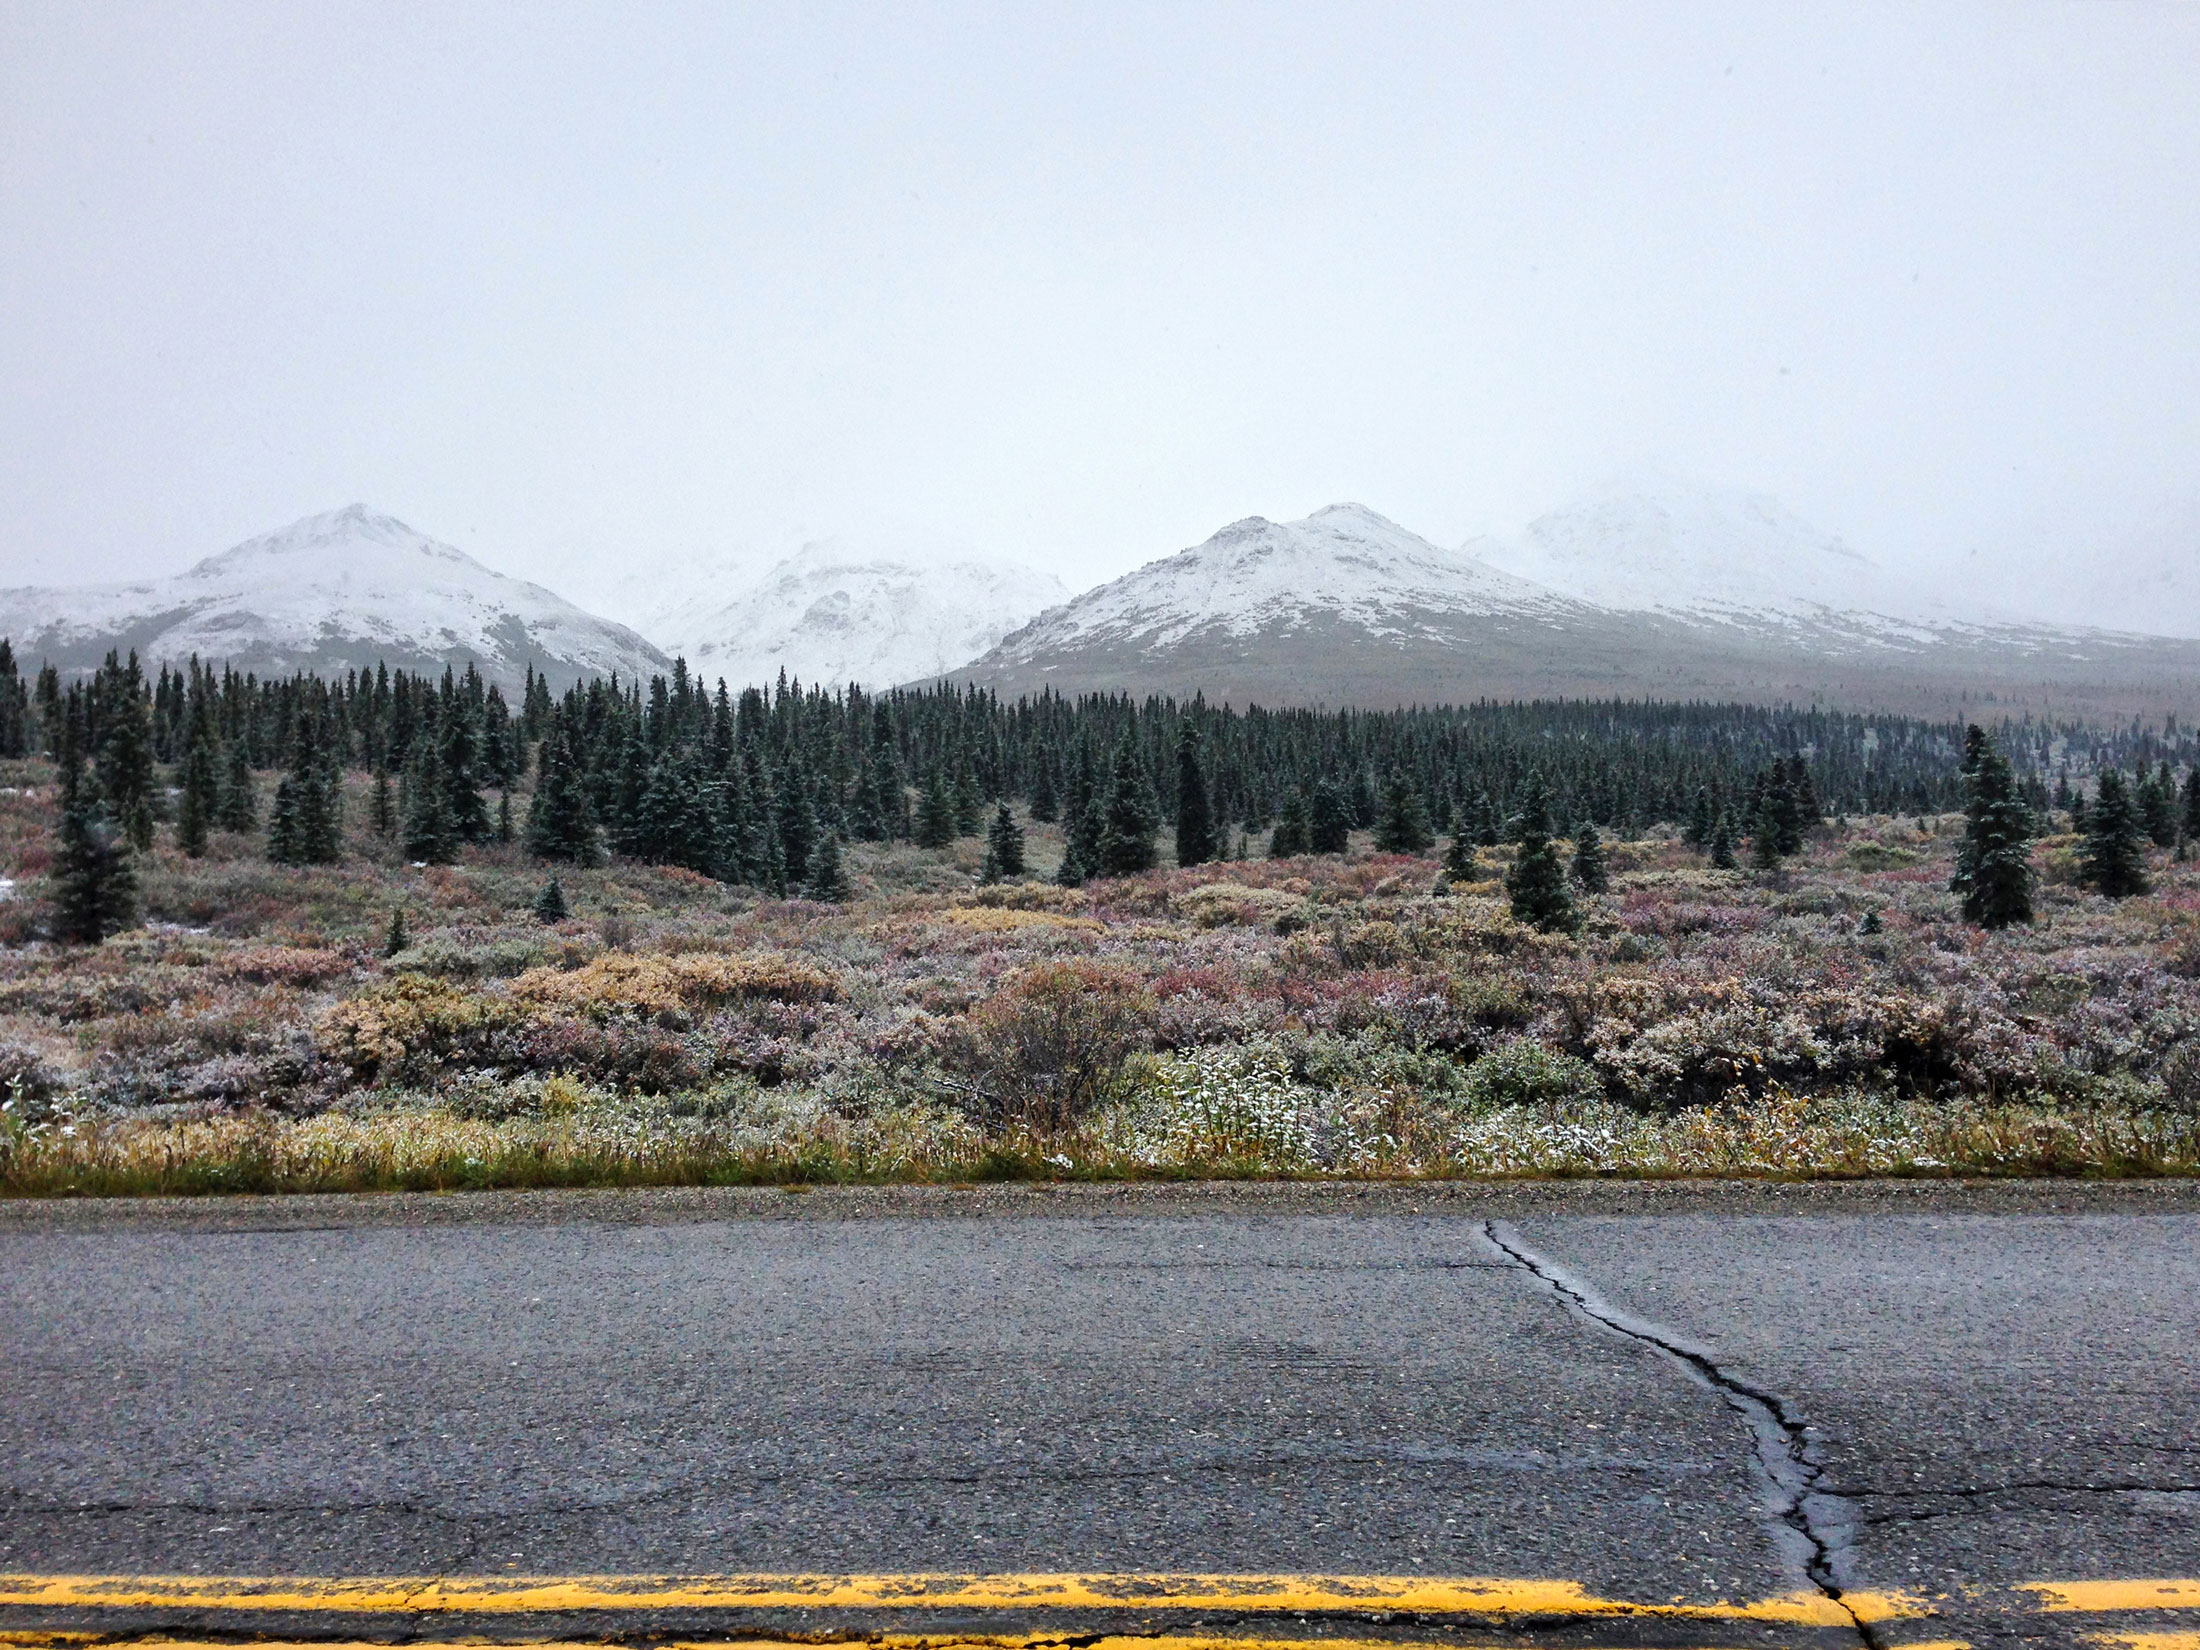 Snowcapped mountains and evergreens along the Alaska Highway.